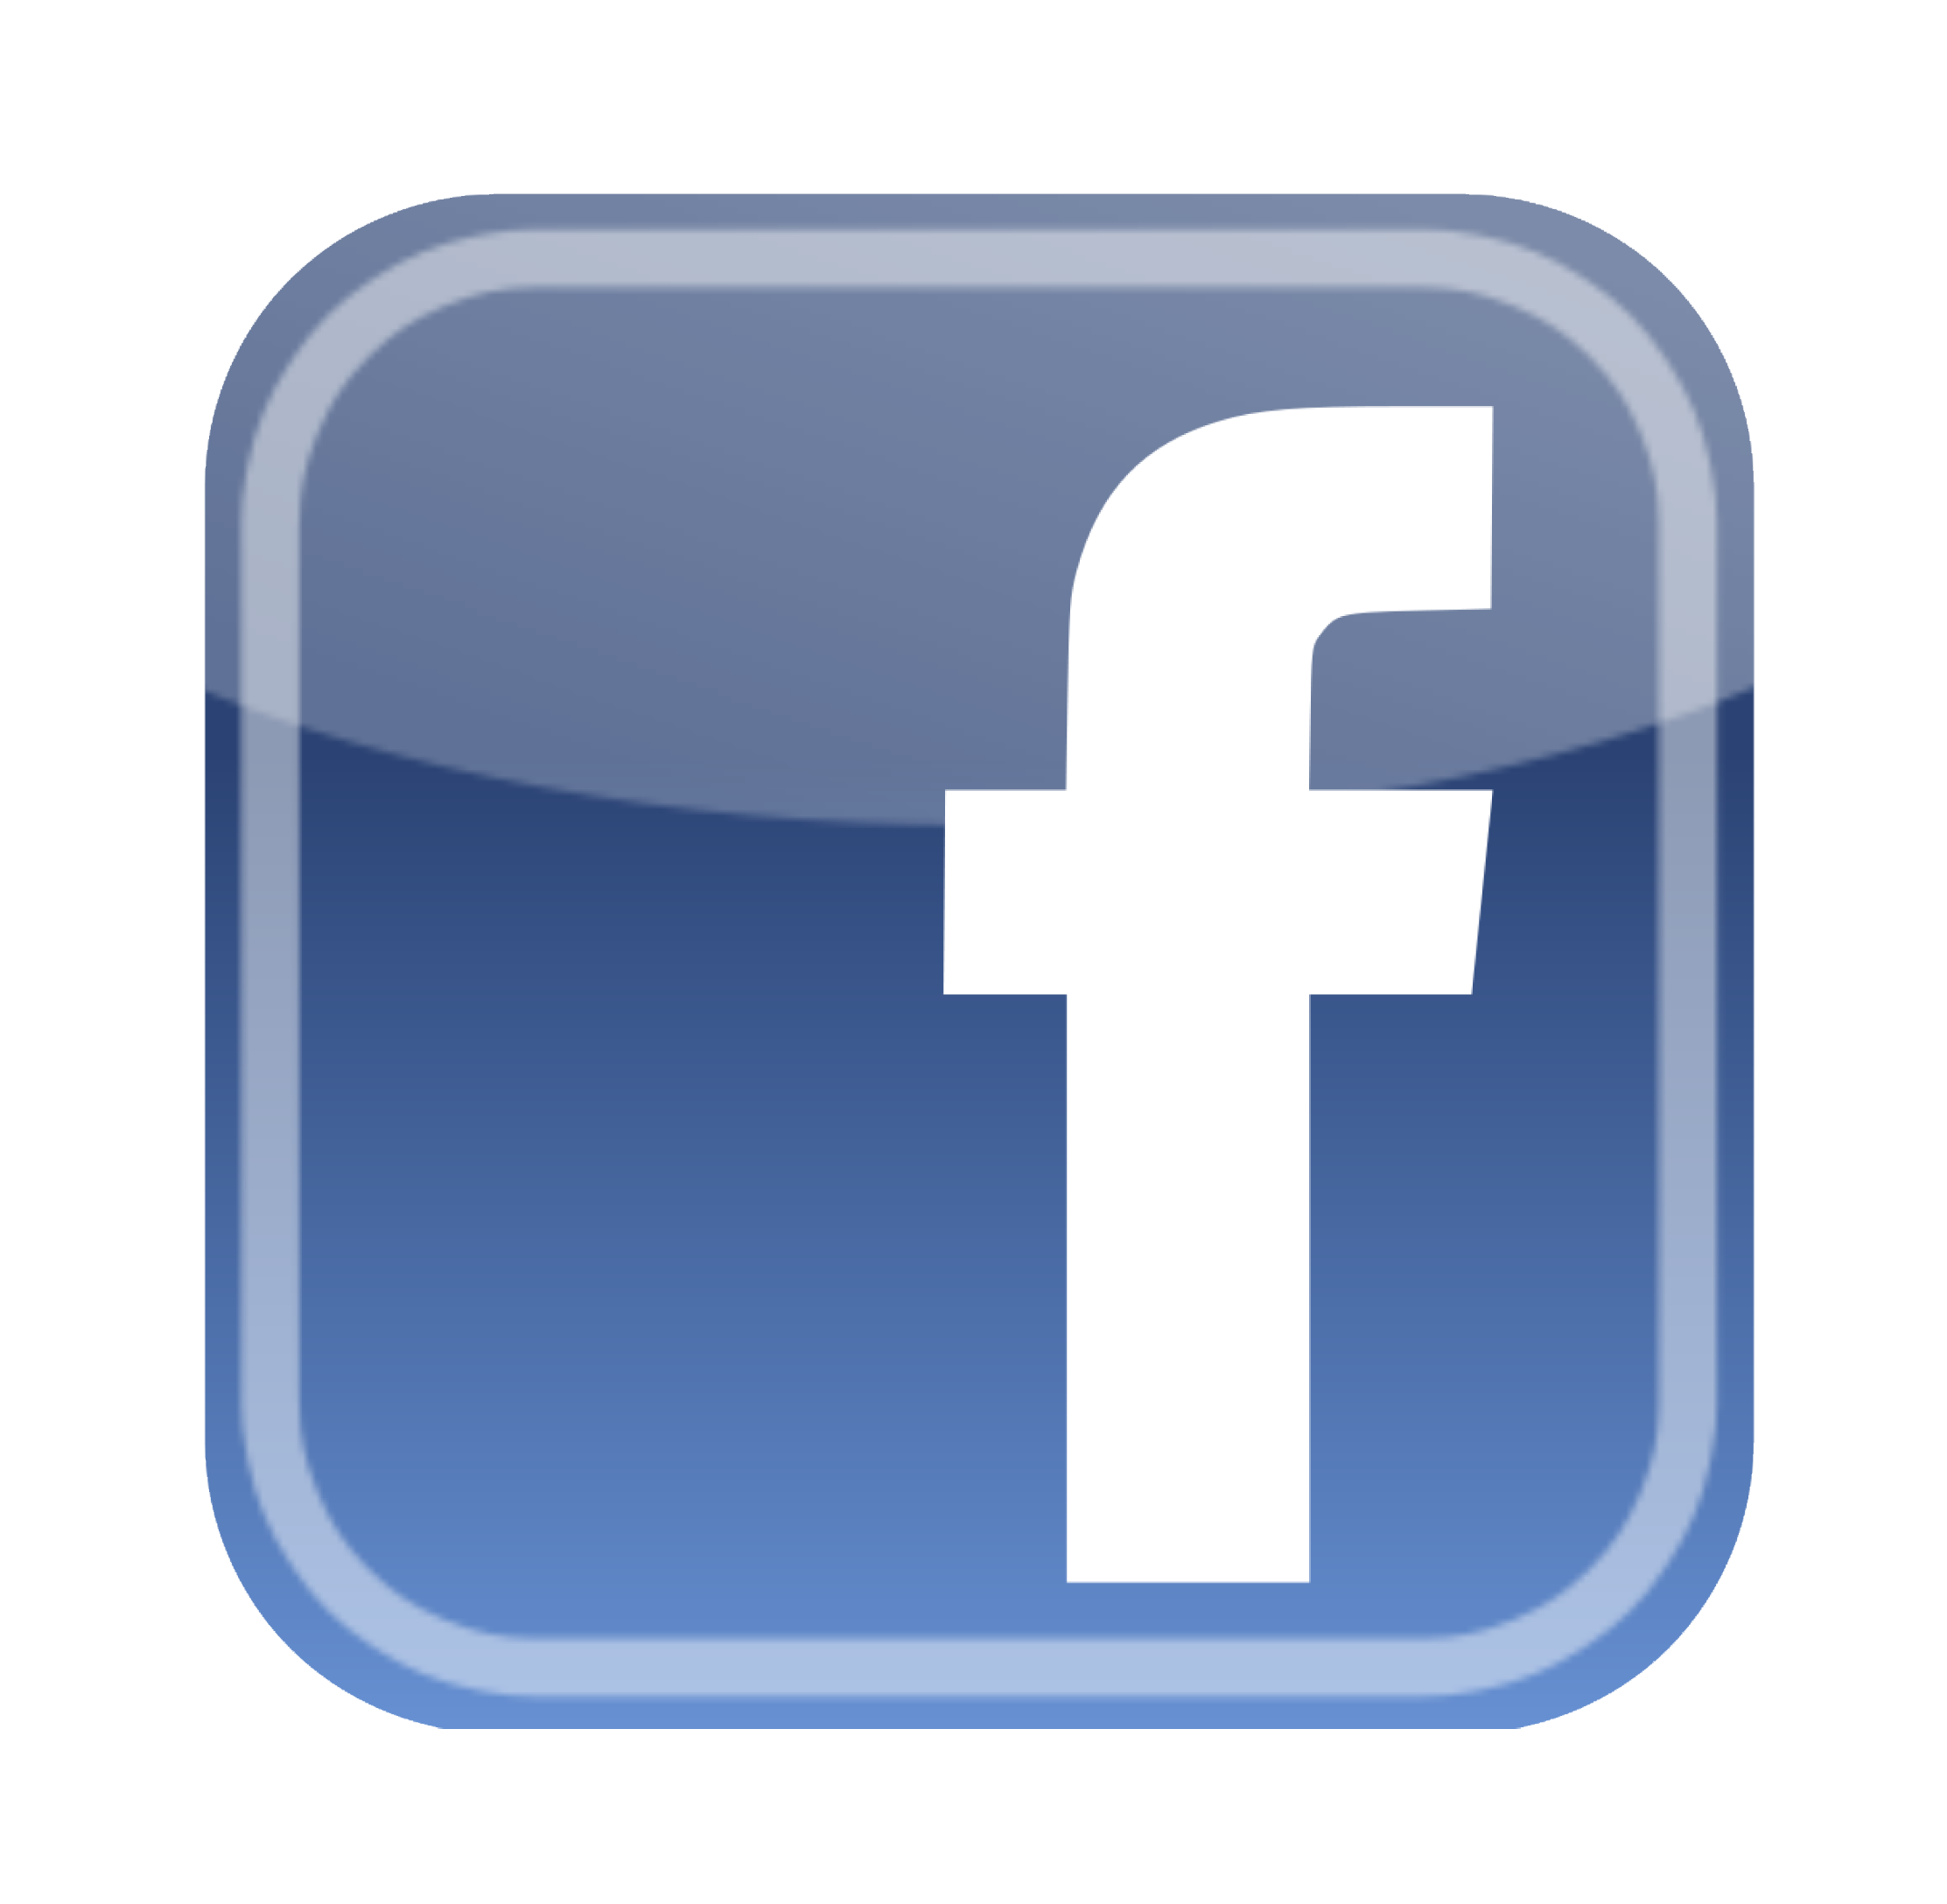 Facebook icons png transparent. Logo pictures free and